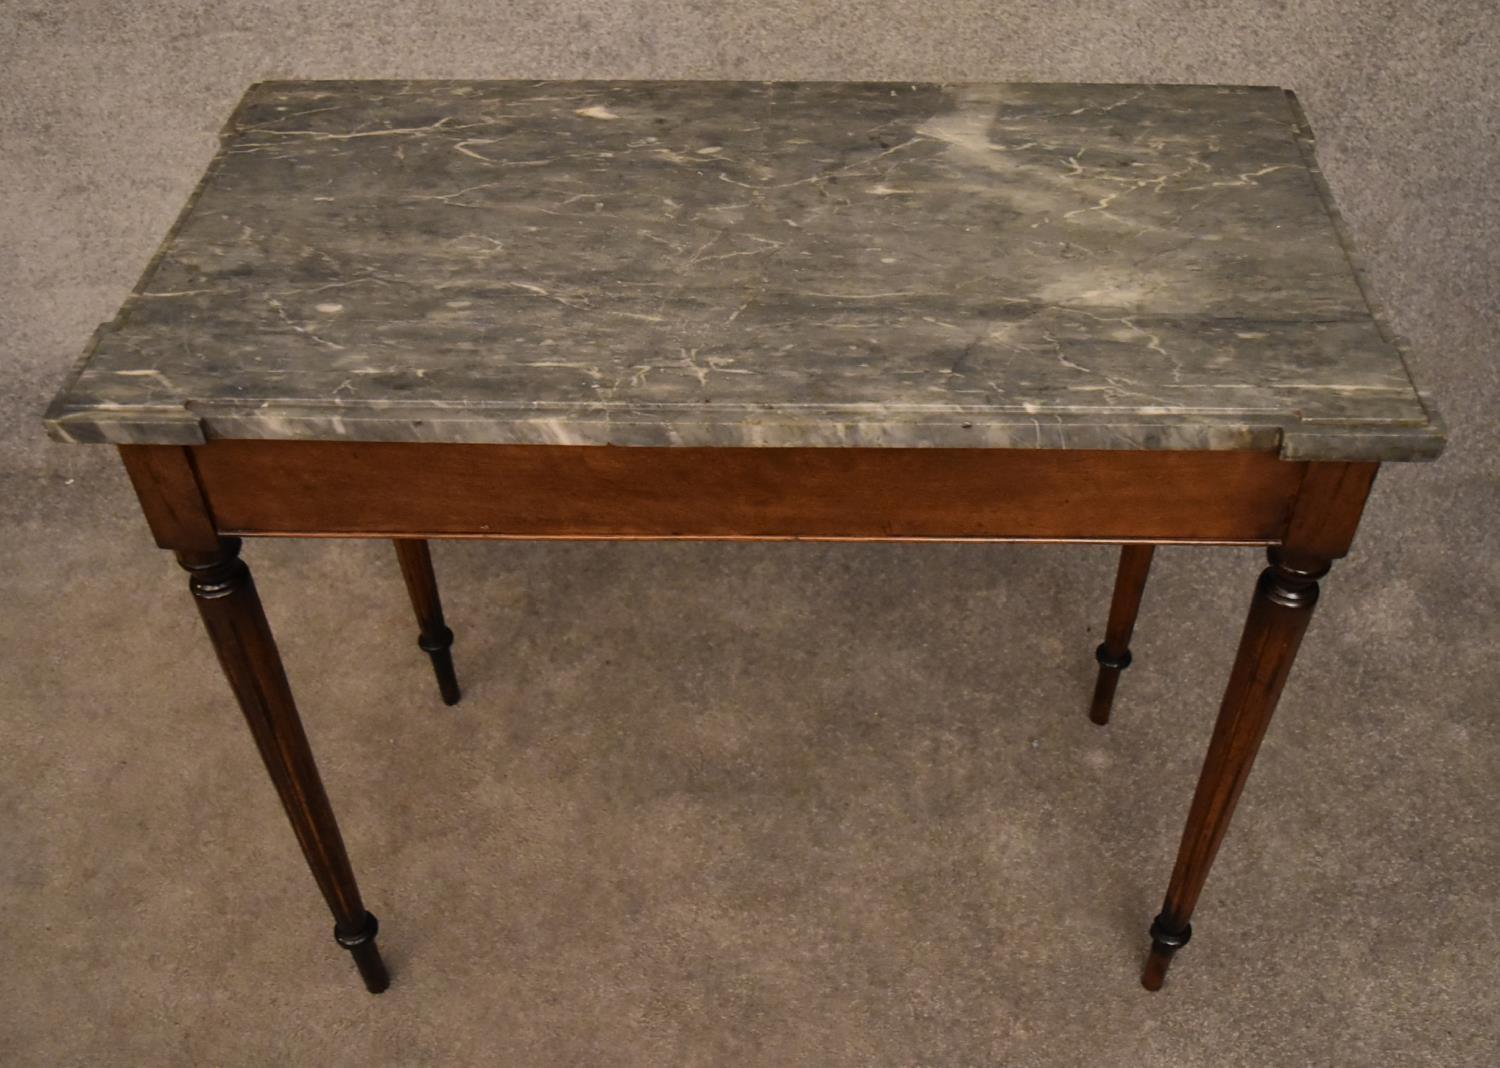 A 19th century mahogany console table with grey marble top on reeded tapering supports. H.75x82x43cm - Image 2 of 5